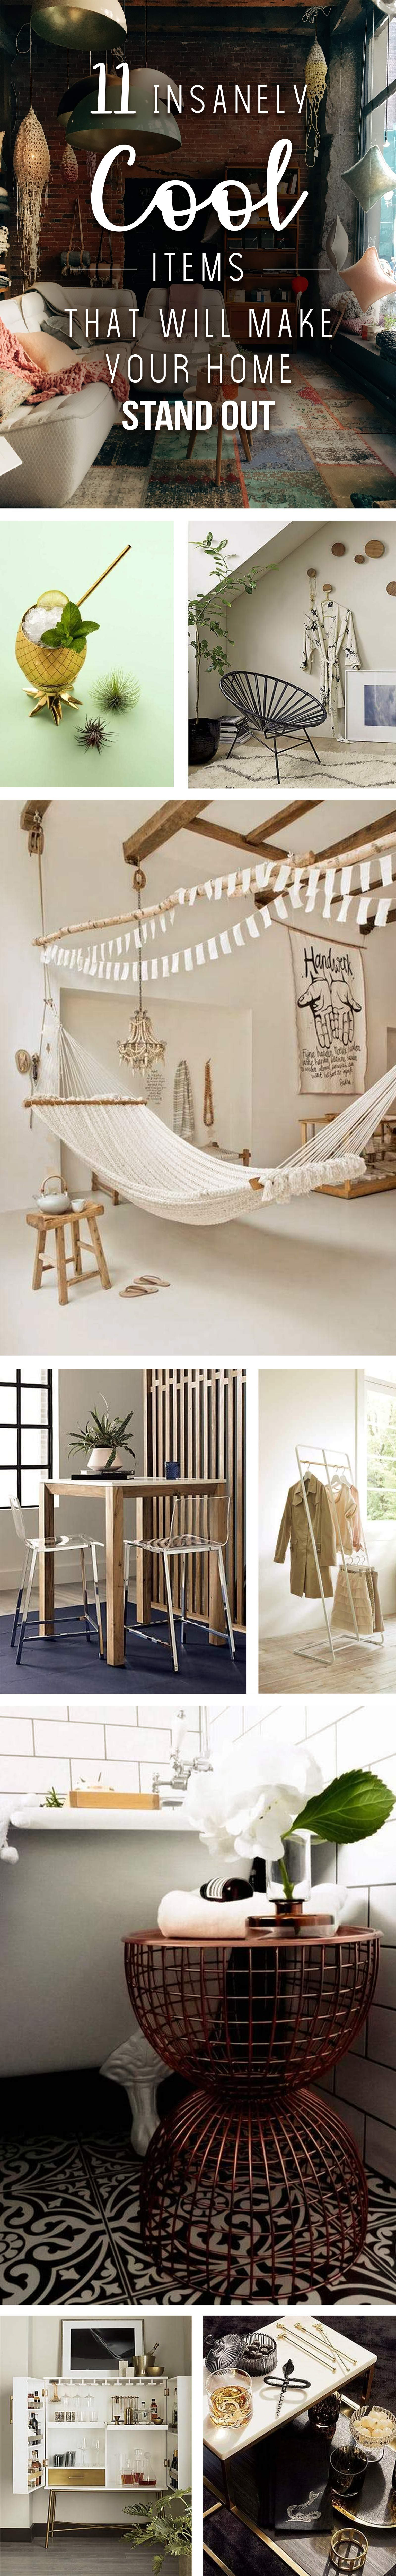 insanely cool home items that will make your place stand out